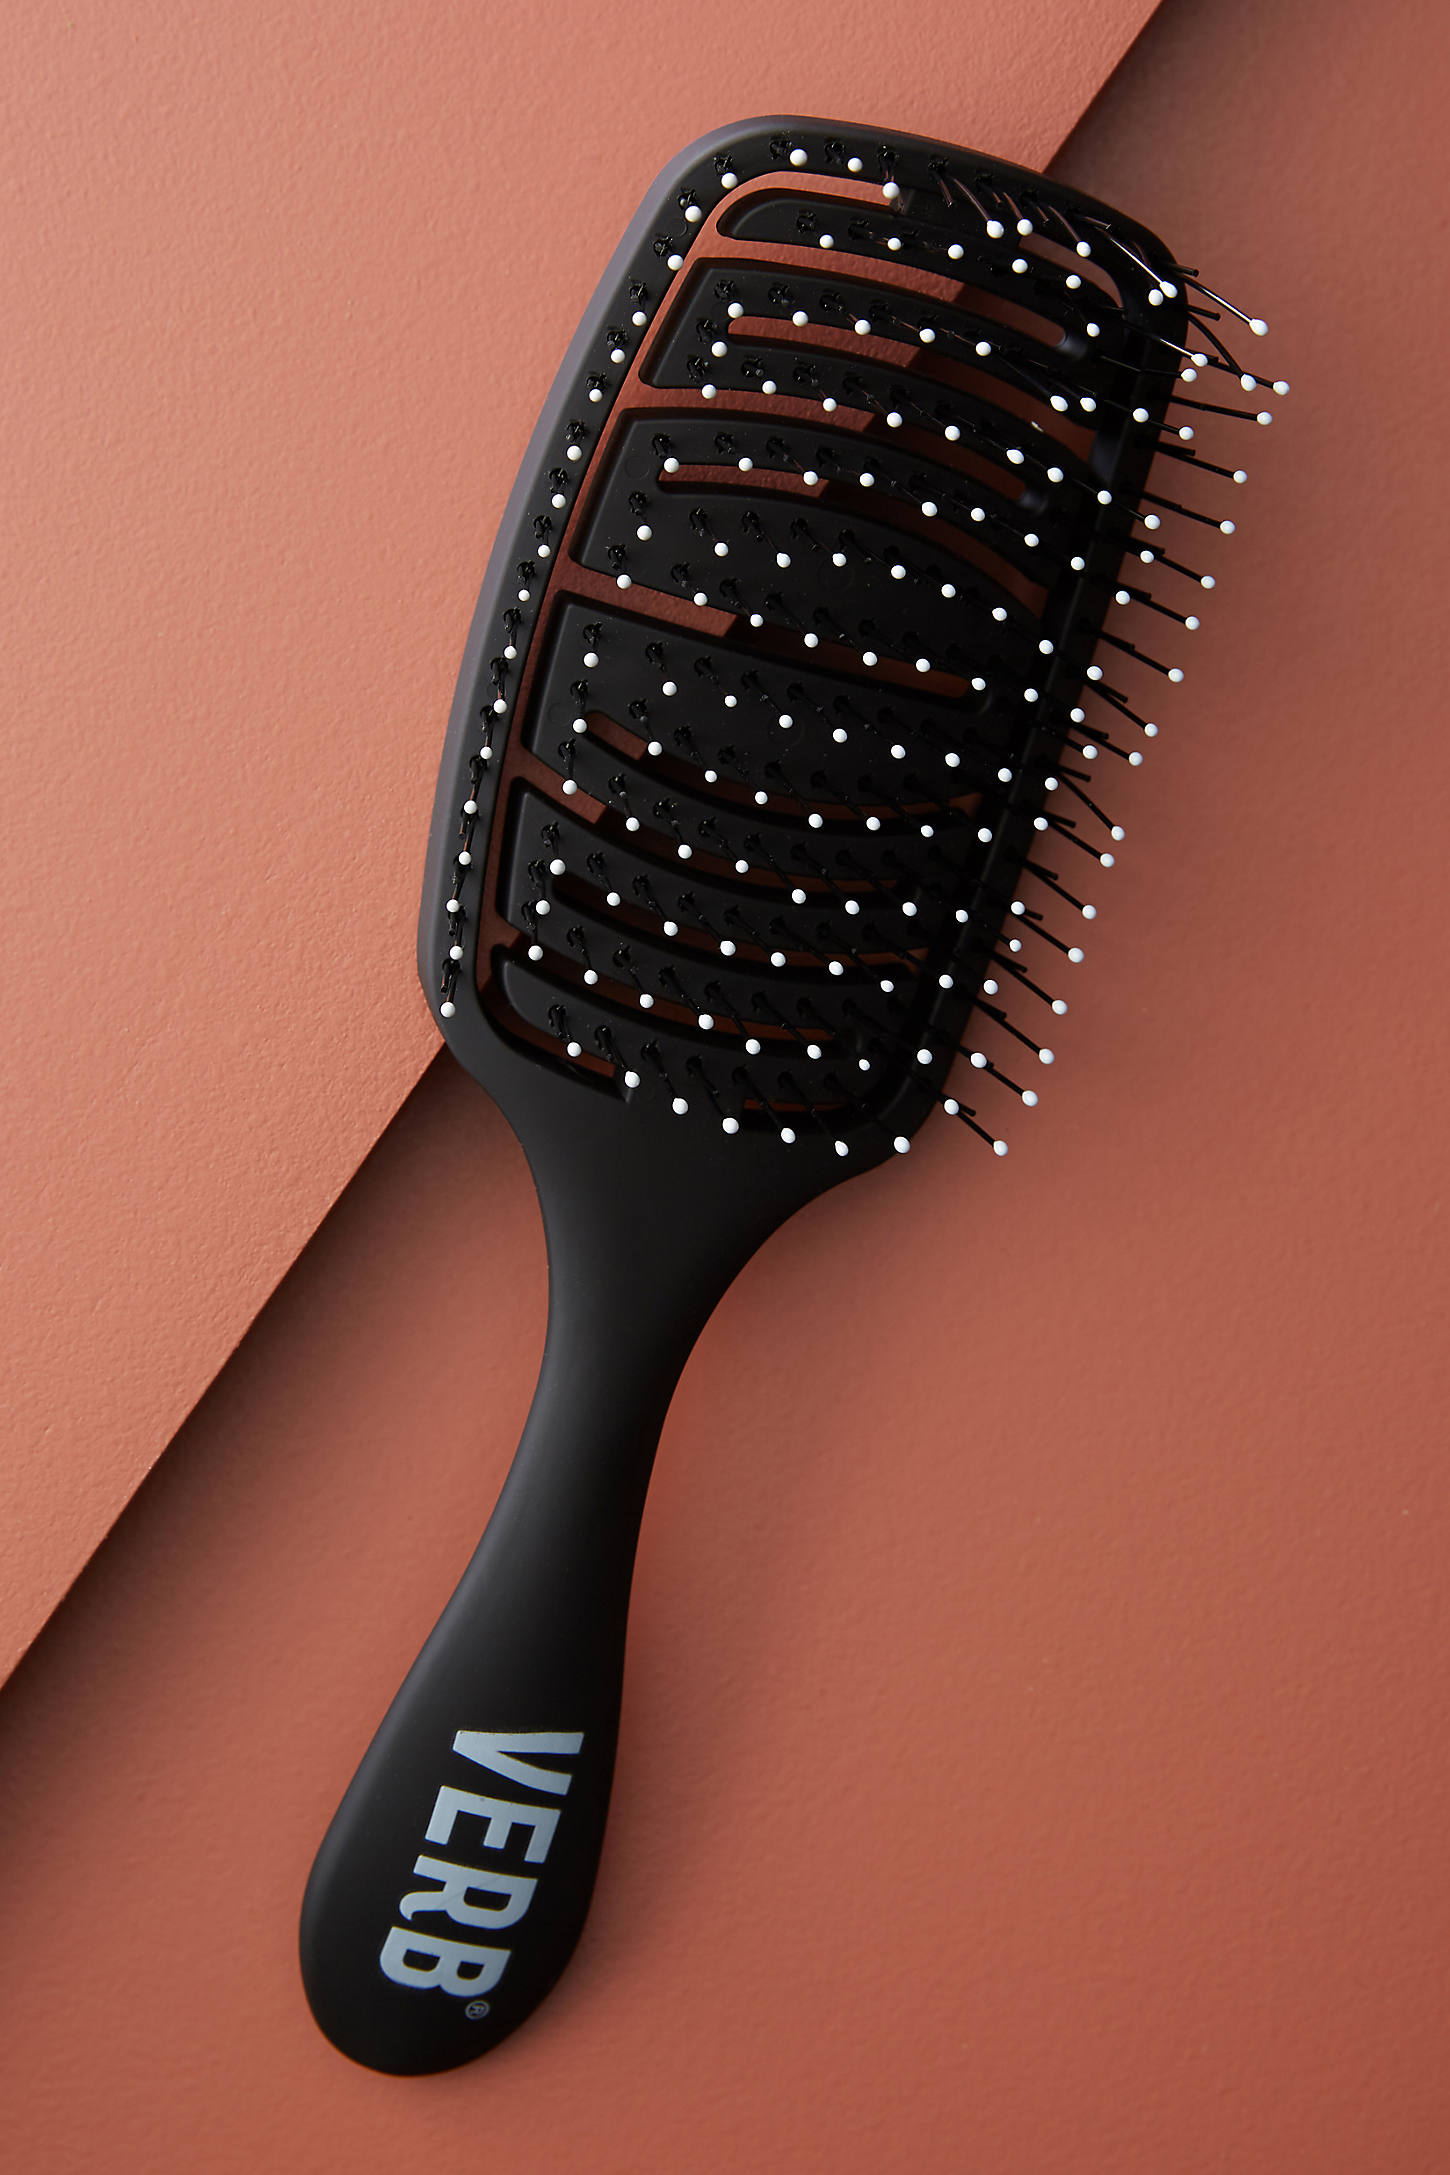 Verb Blow Dry Brush In Black